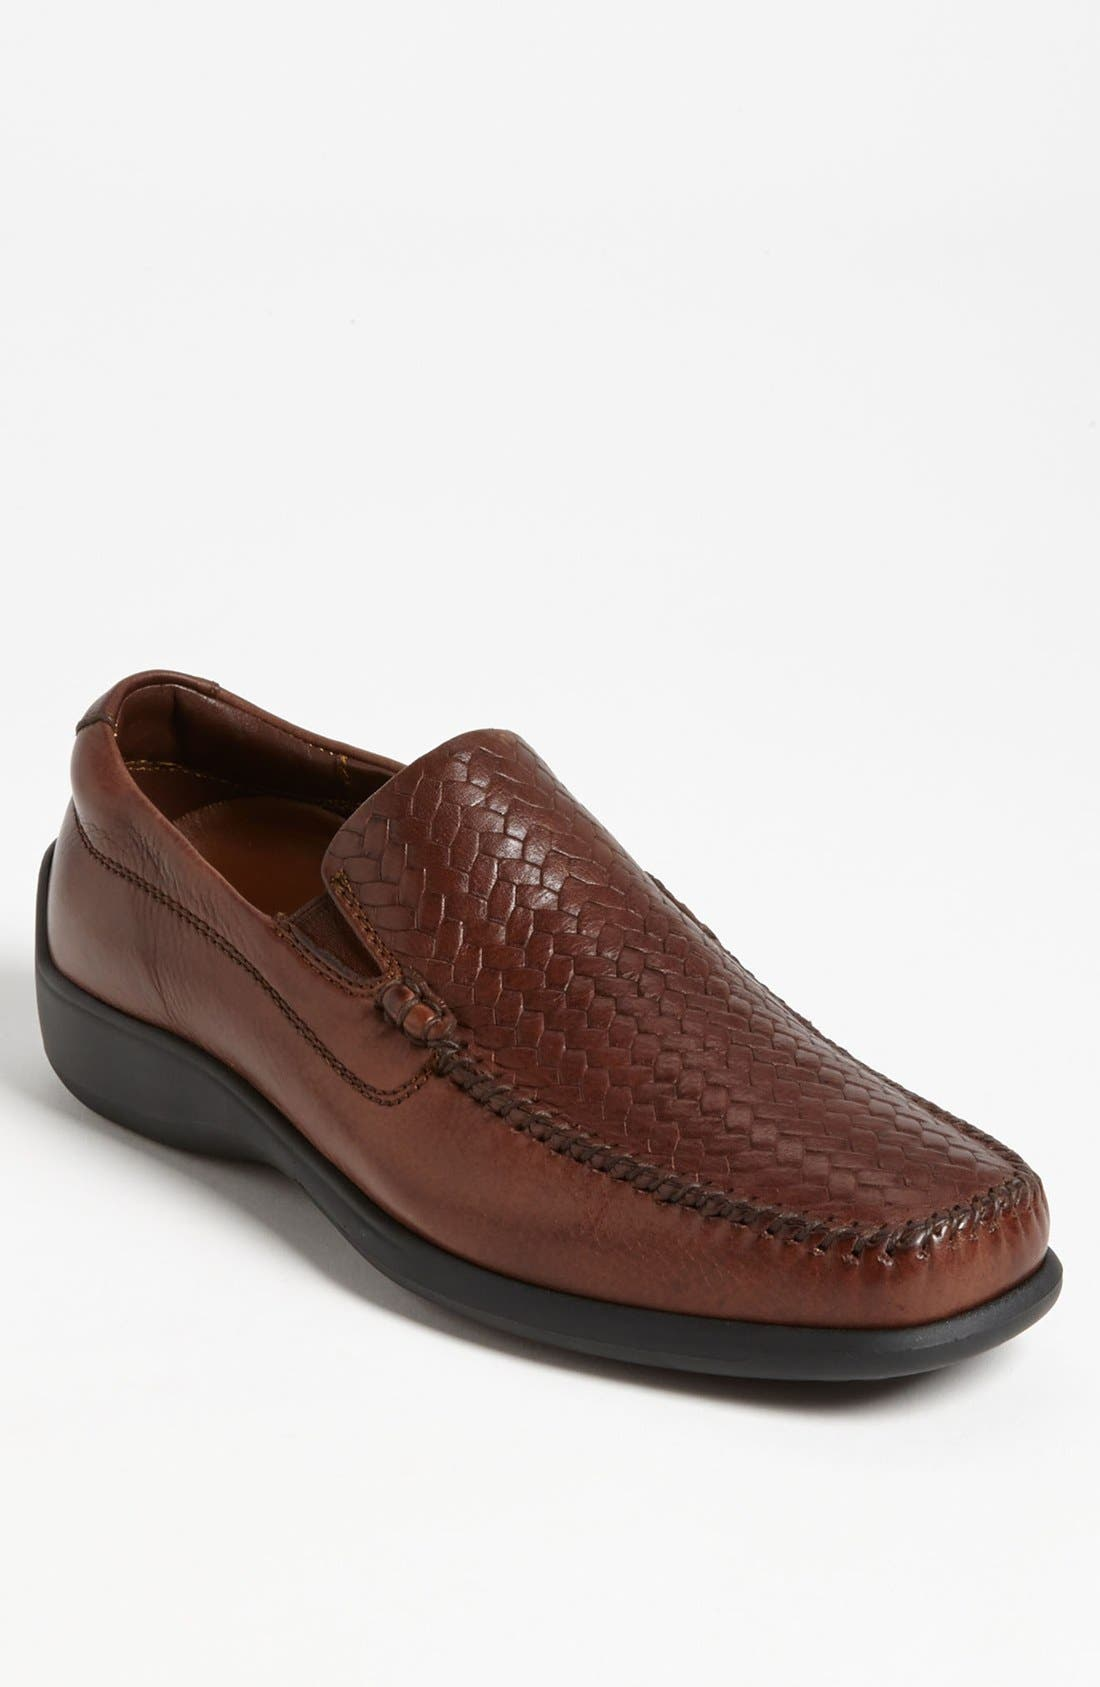 Main Image - Neil M 'Palermo' Loafer